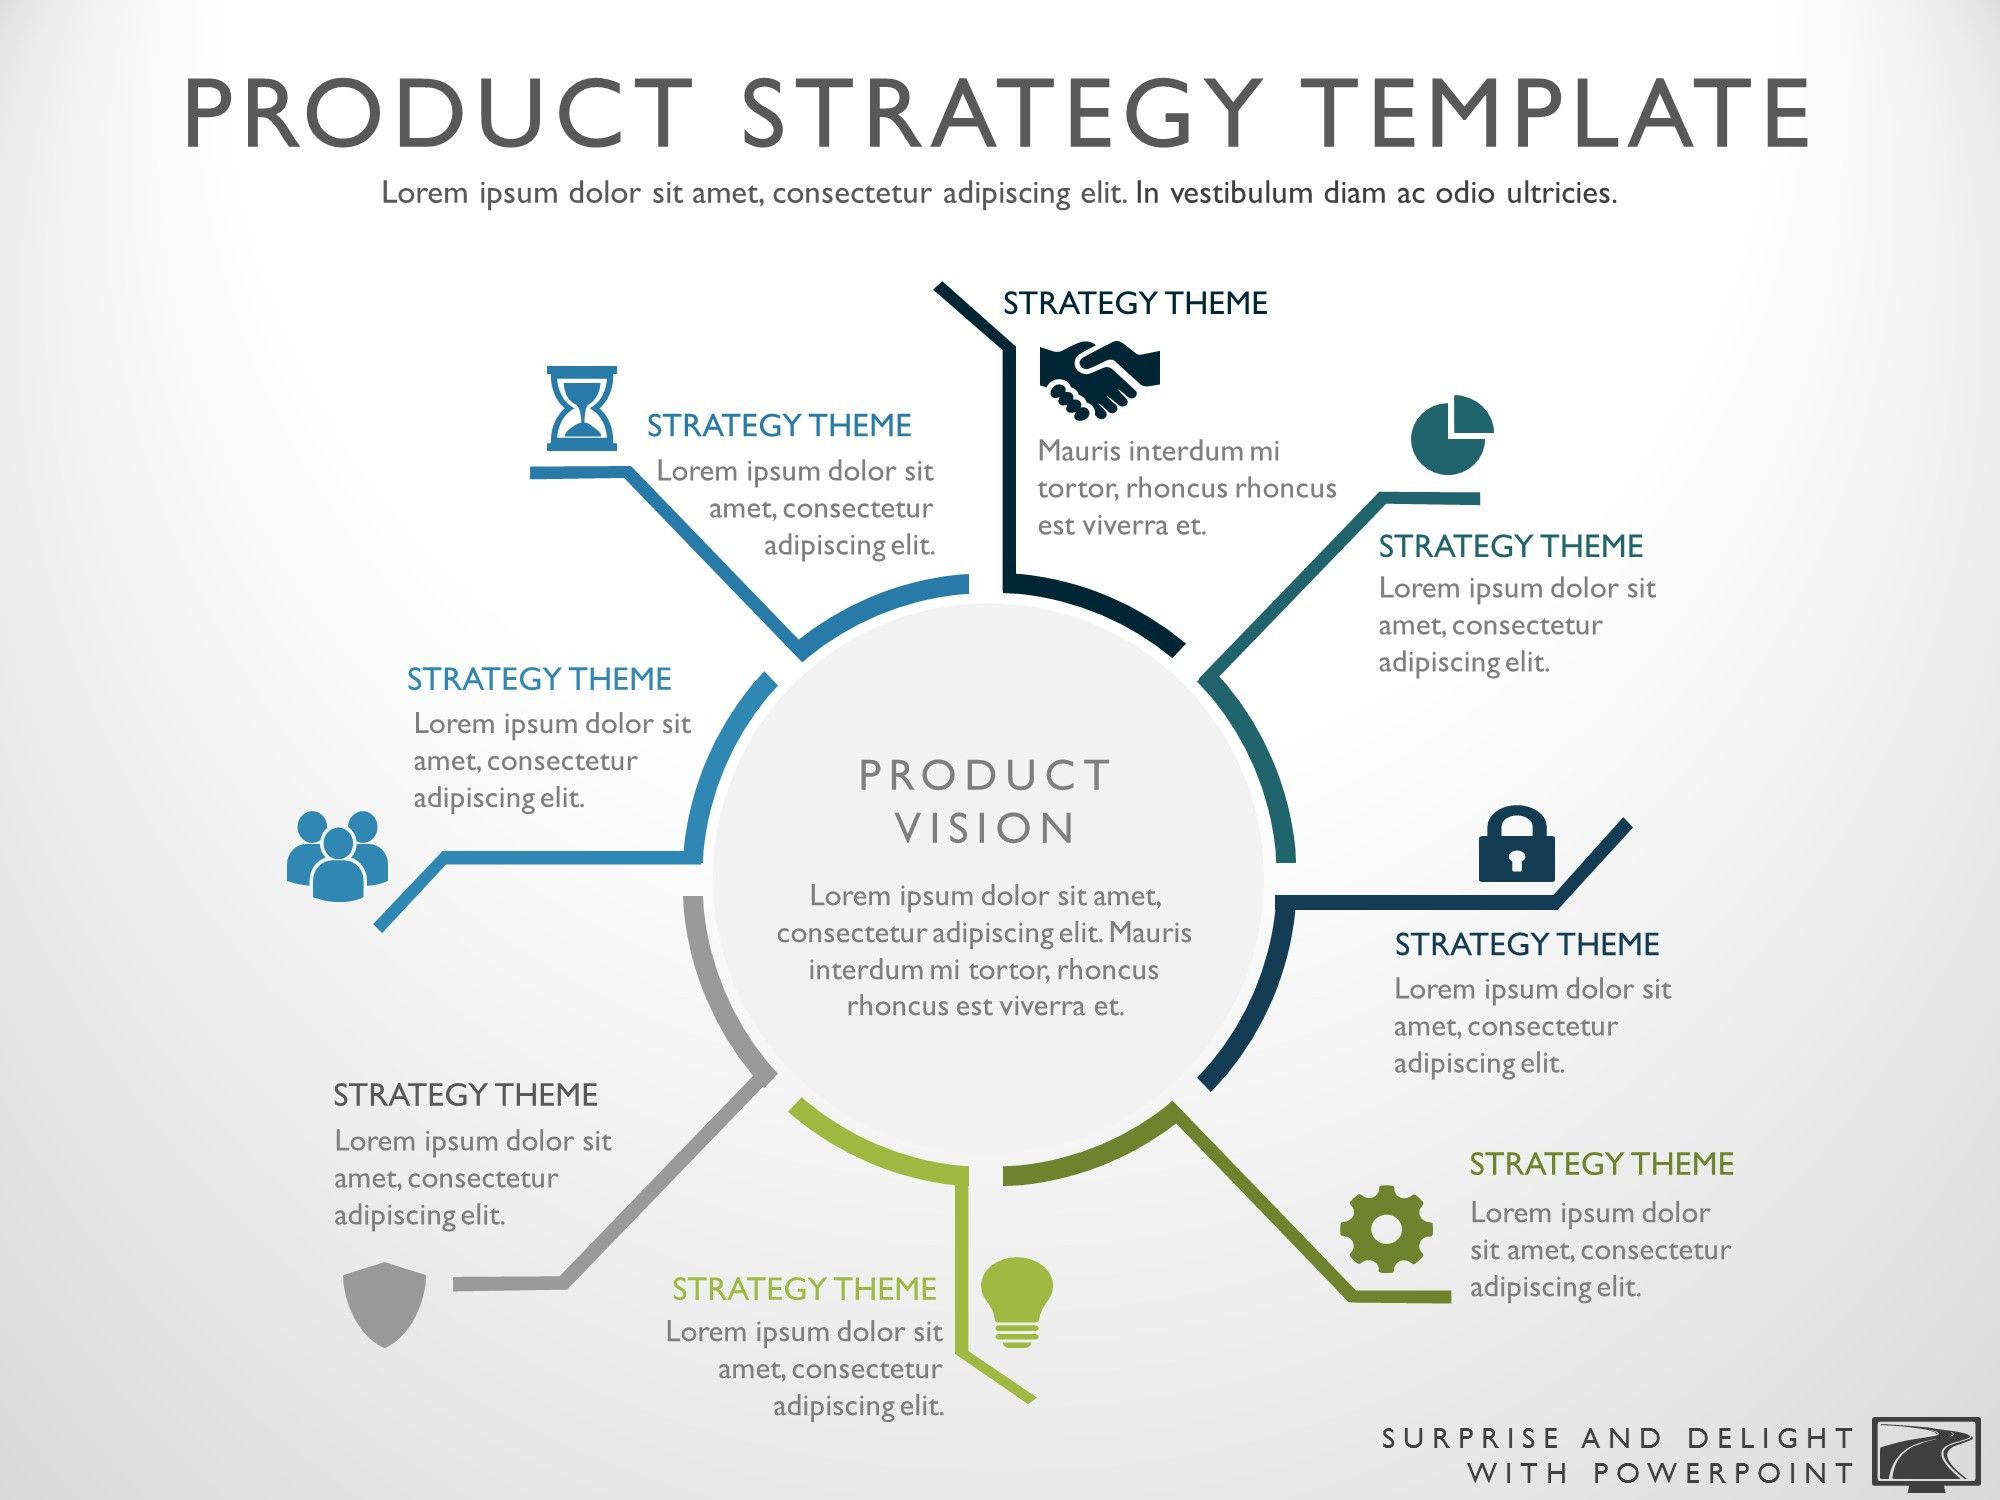 solution approach document template - product strategy template career pinterest templates